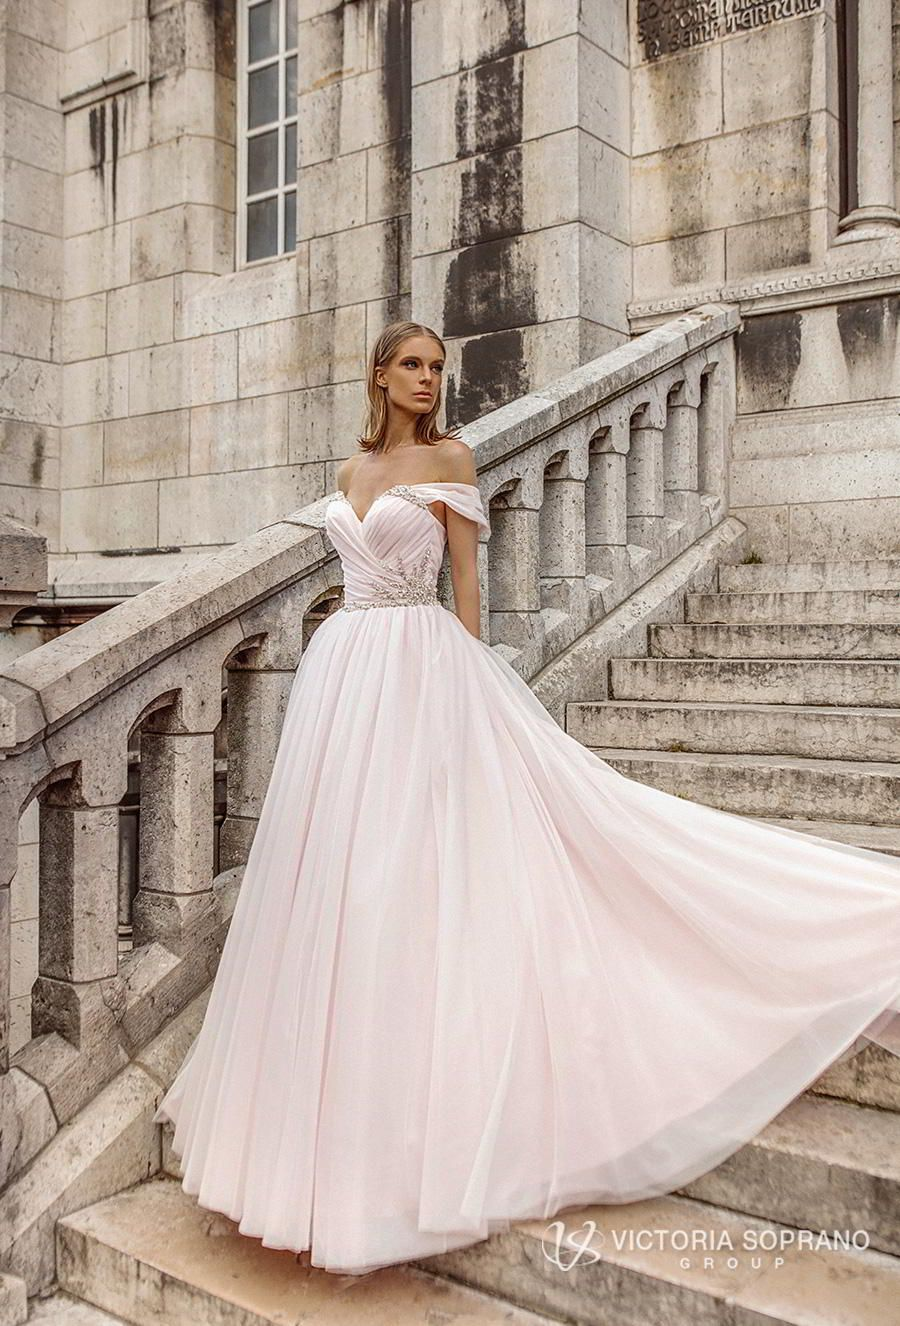 These Victoria Soprano Wedding Dresses Will Make You Swoon 2019 Love In Paris Bridal Collection Wedding Inspirasi Wedding Dresses Short Wedding Gowns Blush Wedding Gown